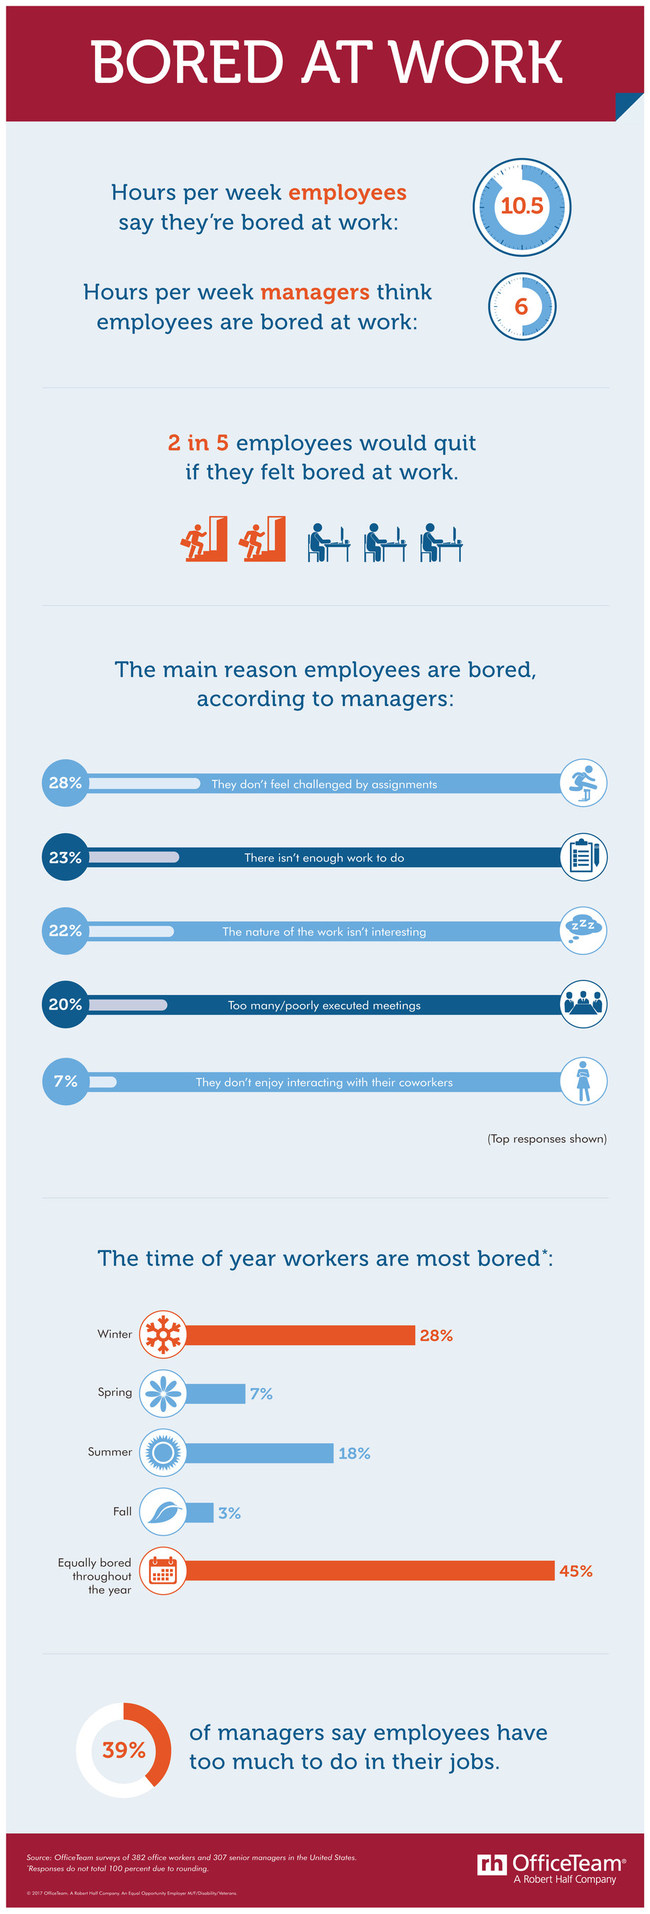 According to a new survey from OfficeTeam, professionals admit they're bored an average of 10.5 hours per week. That's more than a full day a week, or the equivalent of 68 days a year! And 2 in 5 employees (40%) said it's likely they'd quit their job if they felt bored at work.